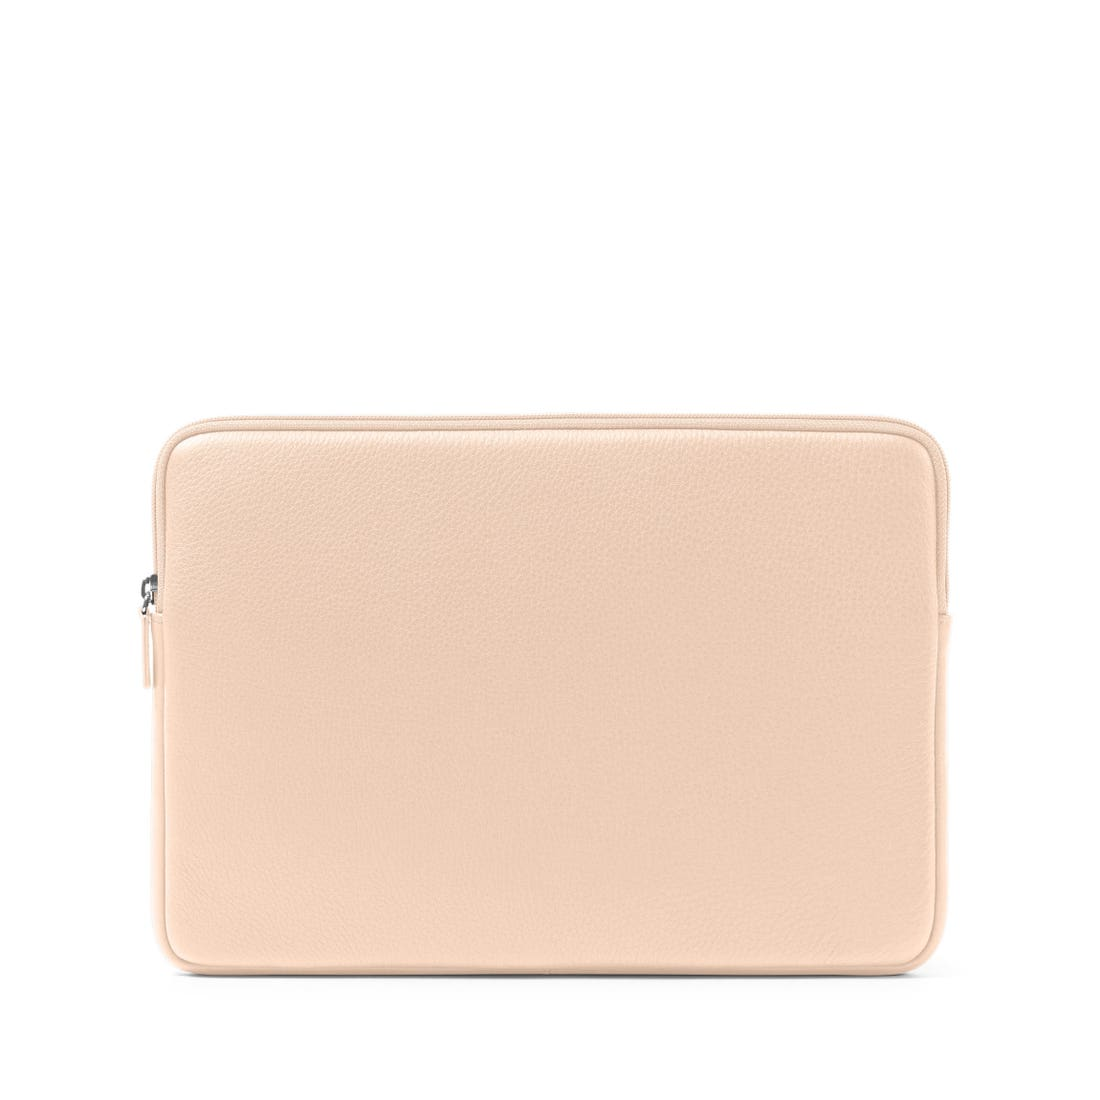 13 Inch MacBook Sleeve